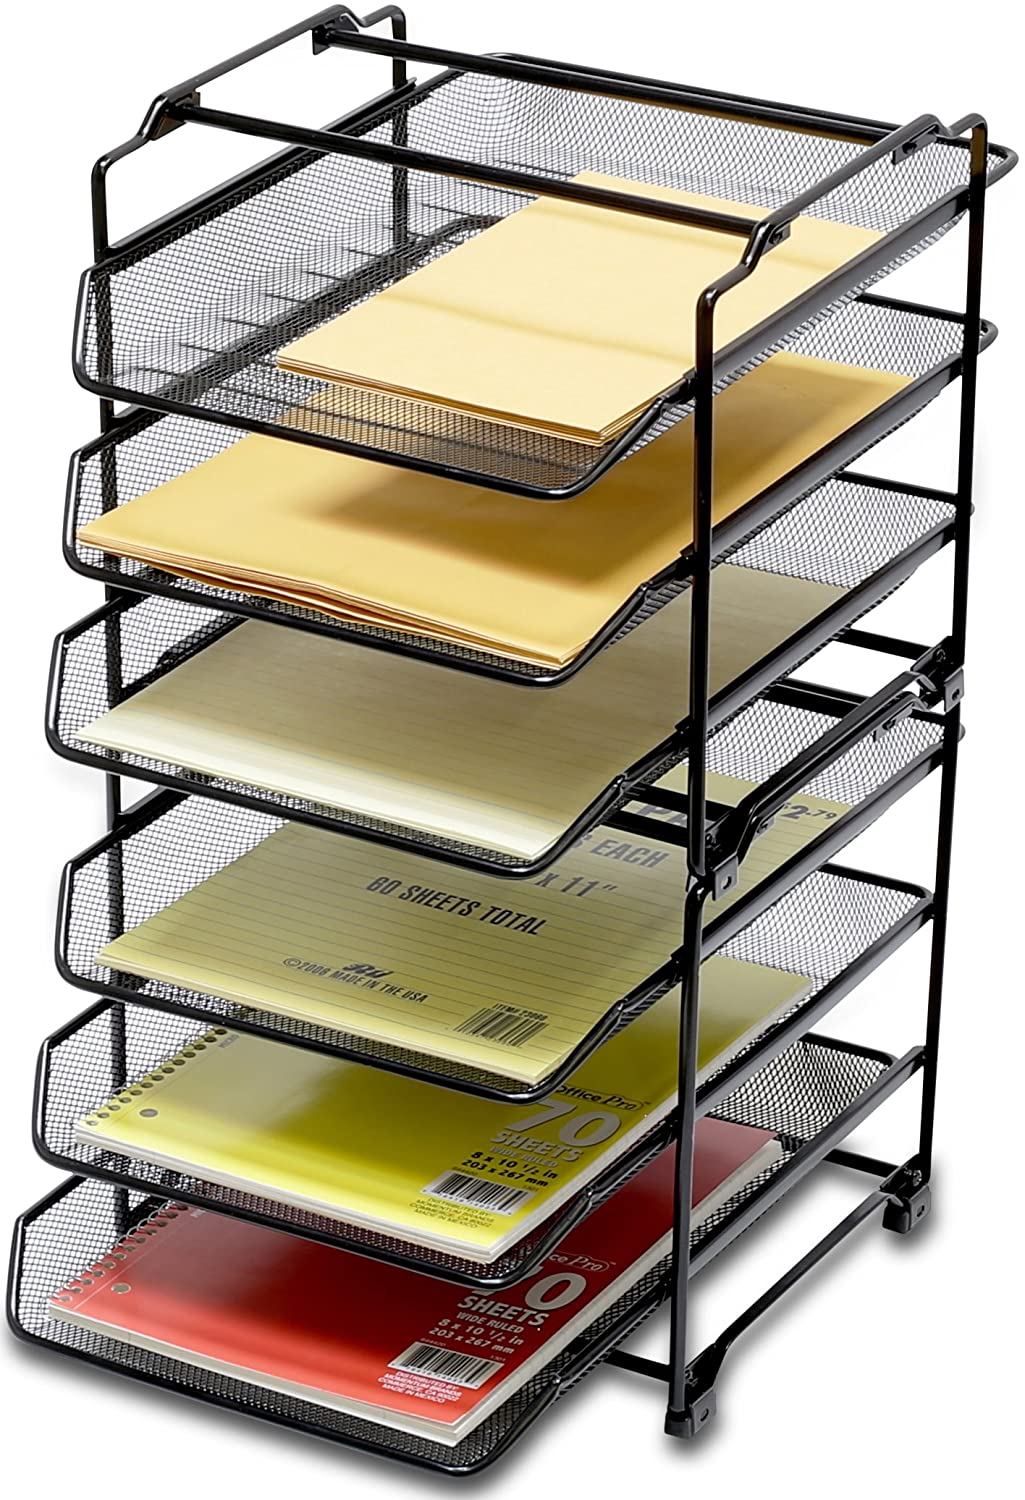 Perfect Amazon.com : DecoBros STACKABLE 3 Tier Desk Document Letter Tray Organizer,  Black : Office Products